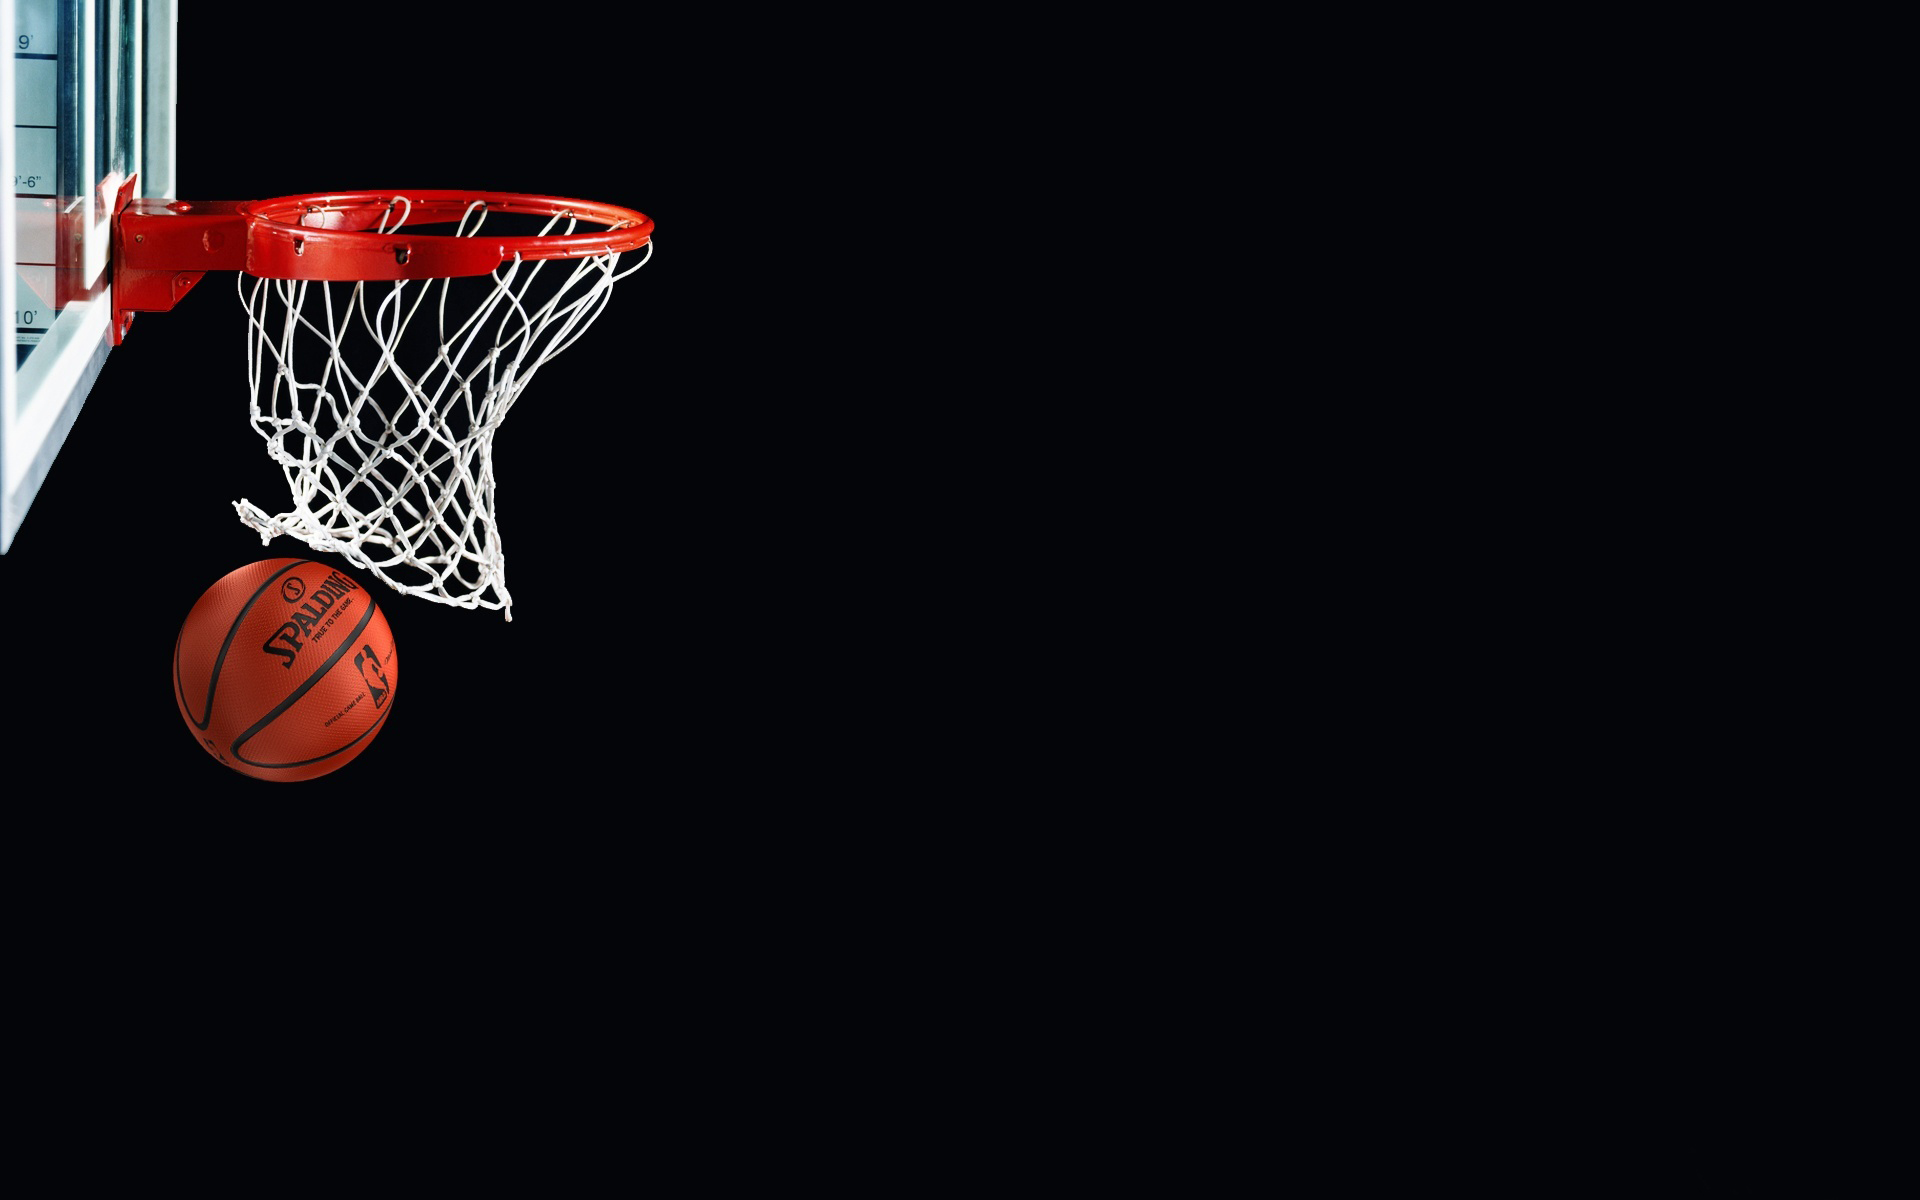 Basketball Computer Wallpapers Desktop Backgrounds 1920x1200 ID 1920x1200